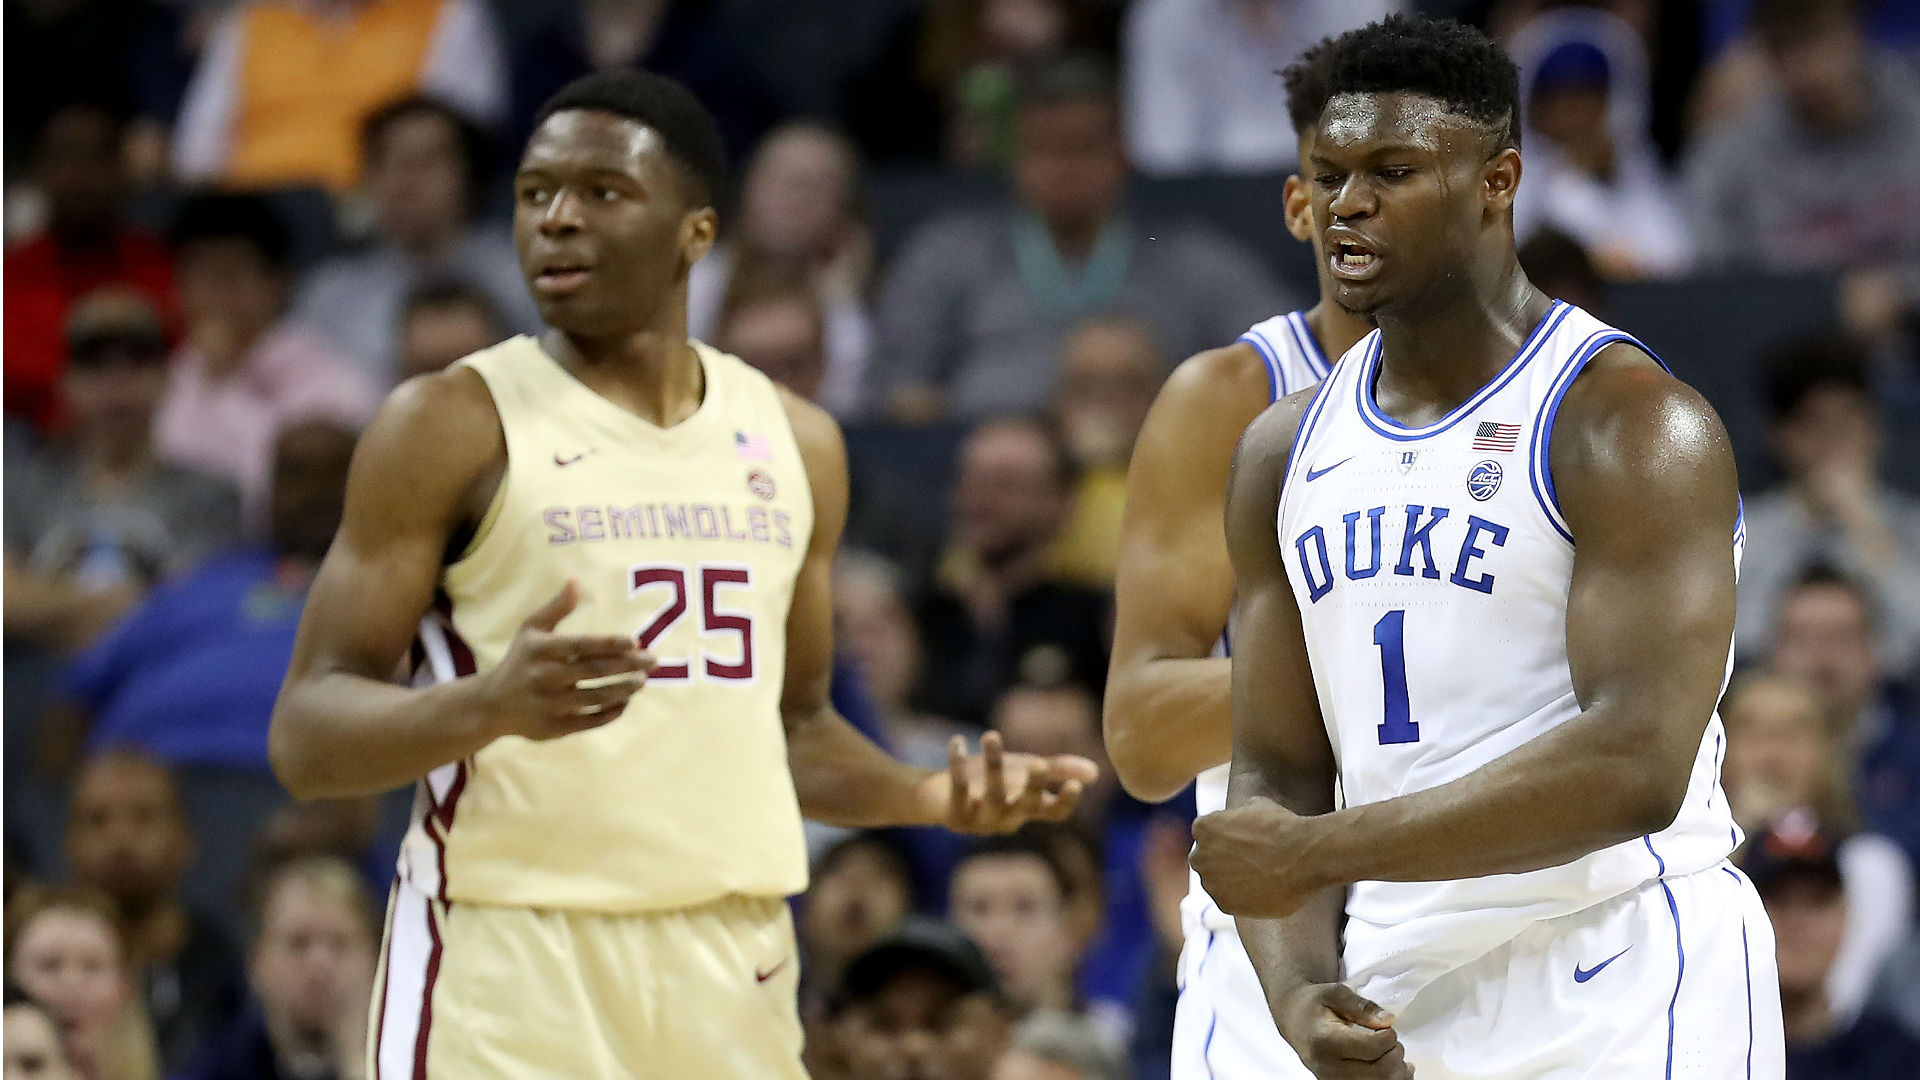 March Madness 2019: 3 takeaways from Duke's ACC Tournament championship win over Florida State